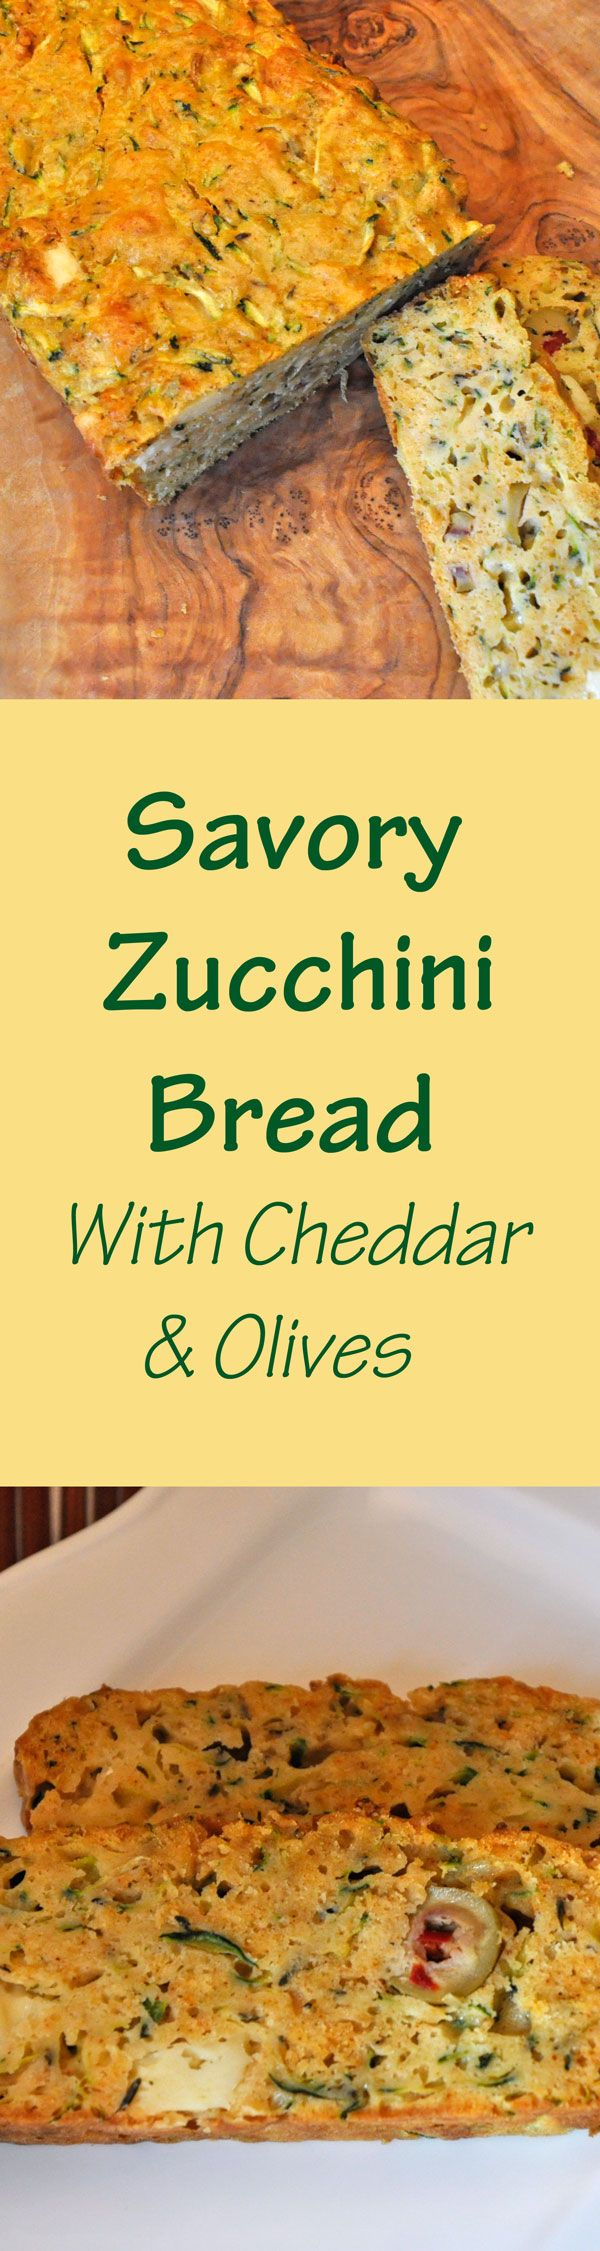 Tired of sweet zucchini breads? Try this Savory Zucchini Bread with Olives, Cheese and Herbs - great with soups & salads #zucchinibread #savorybread